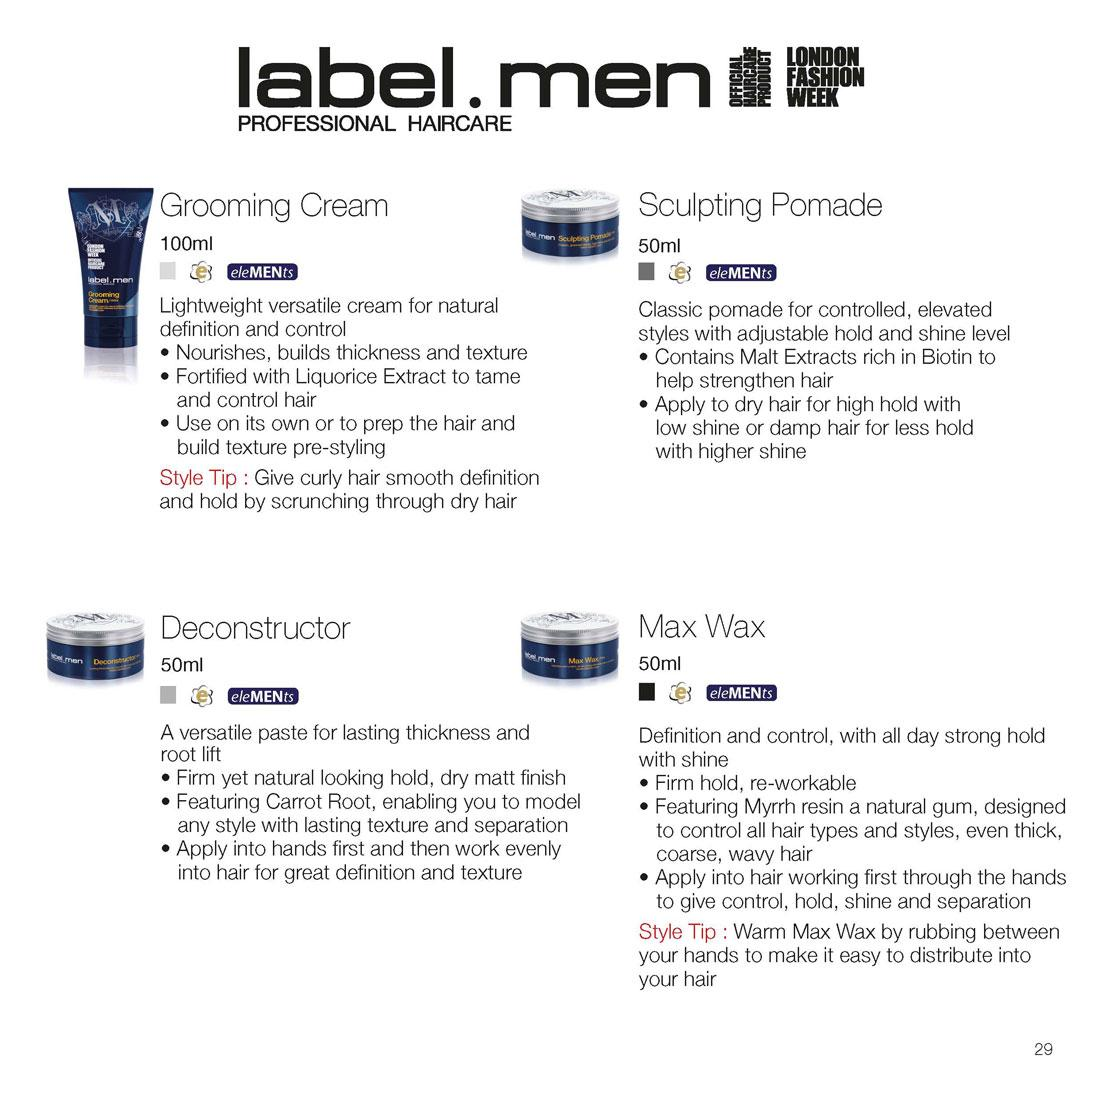 587.9-label-men-4-pg-29.jpg